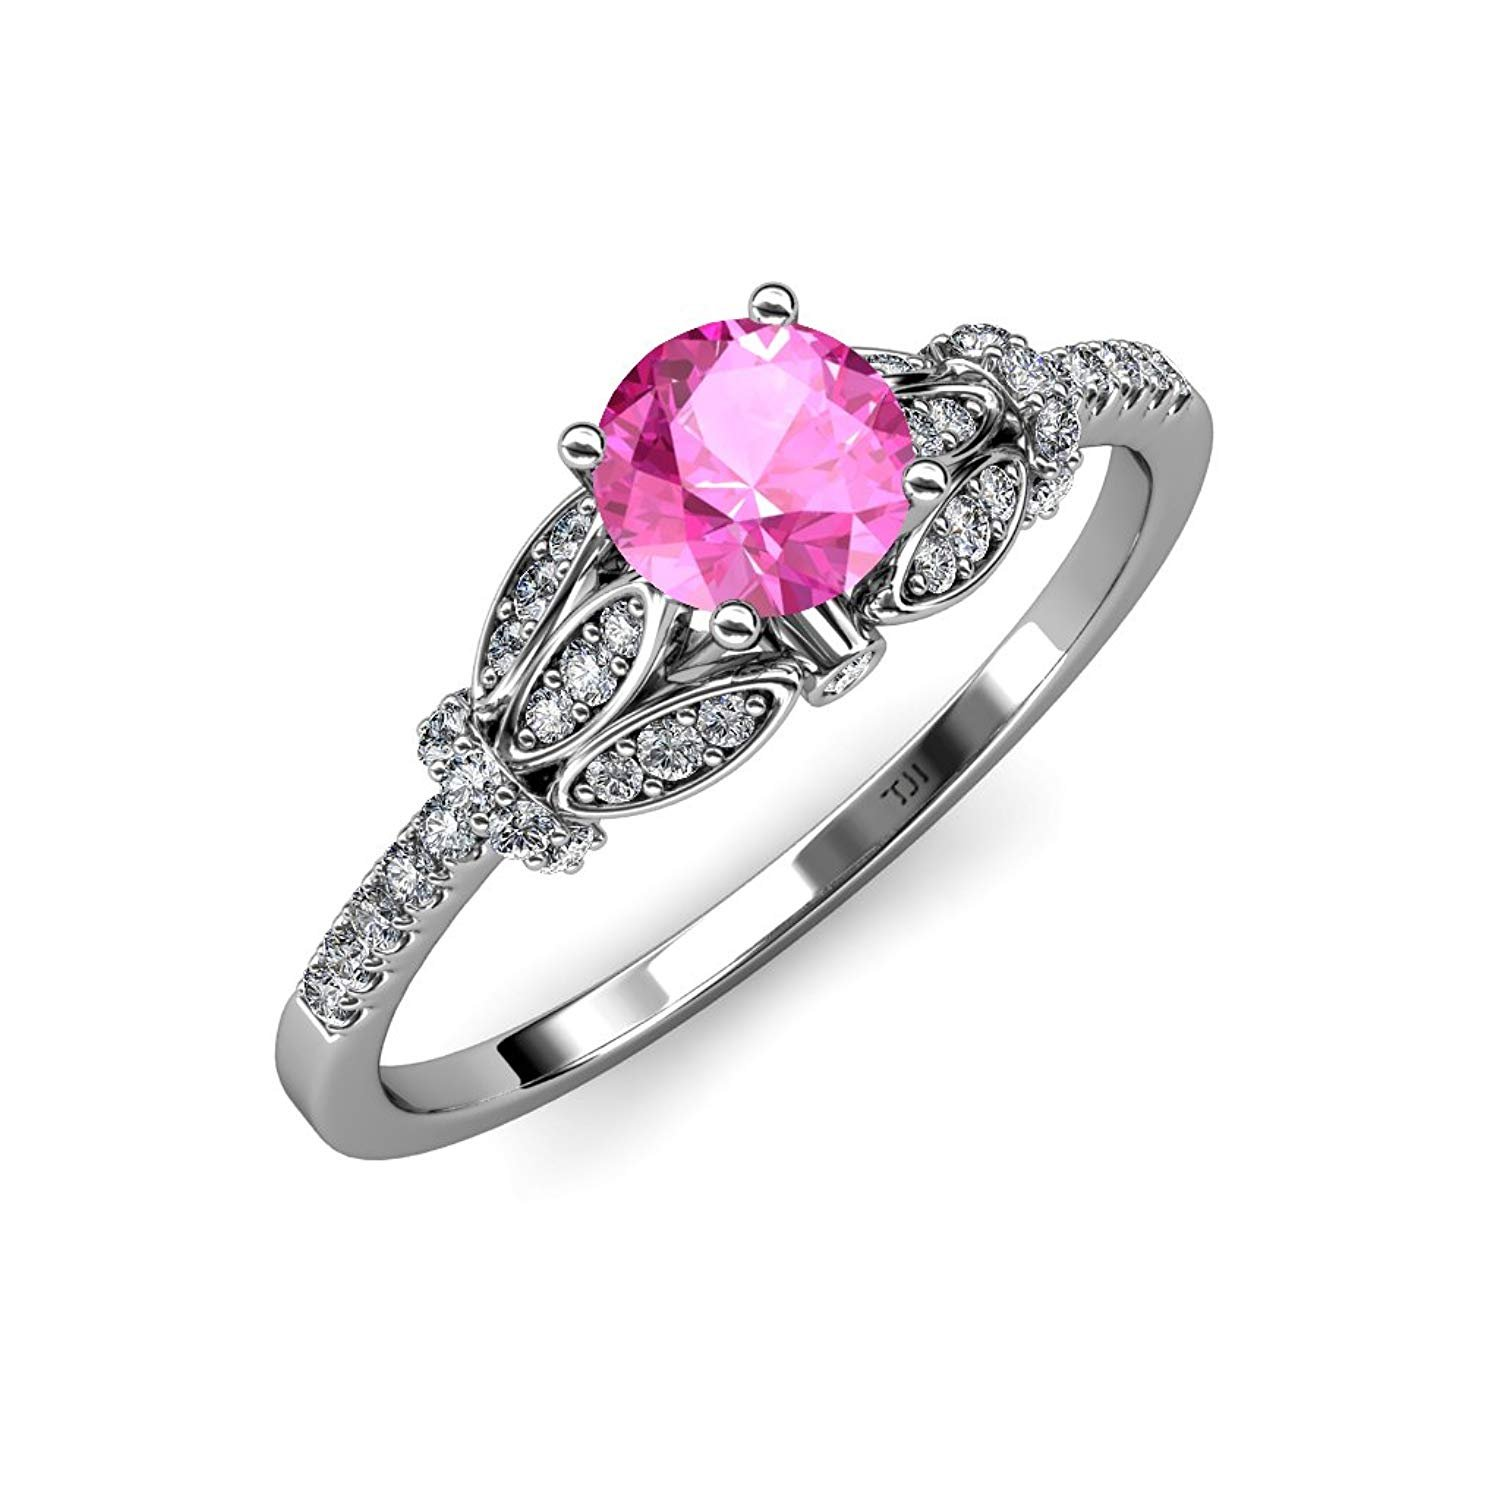 Pink Sapphire and Diamond (SI2-I1, G-H) Engagement Ring 1.23 ct tw in 14K White Gold.size 7 by TriJewels